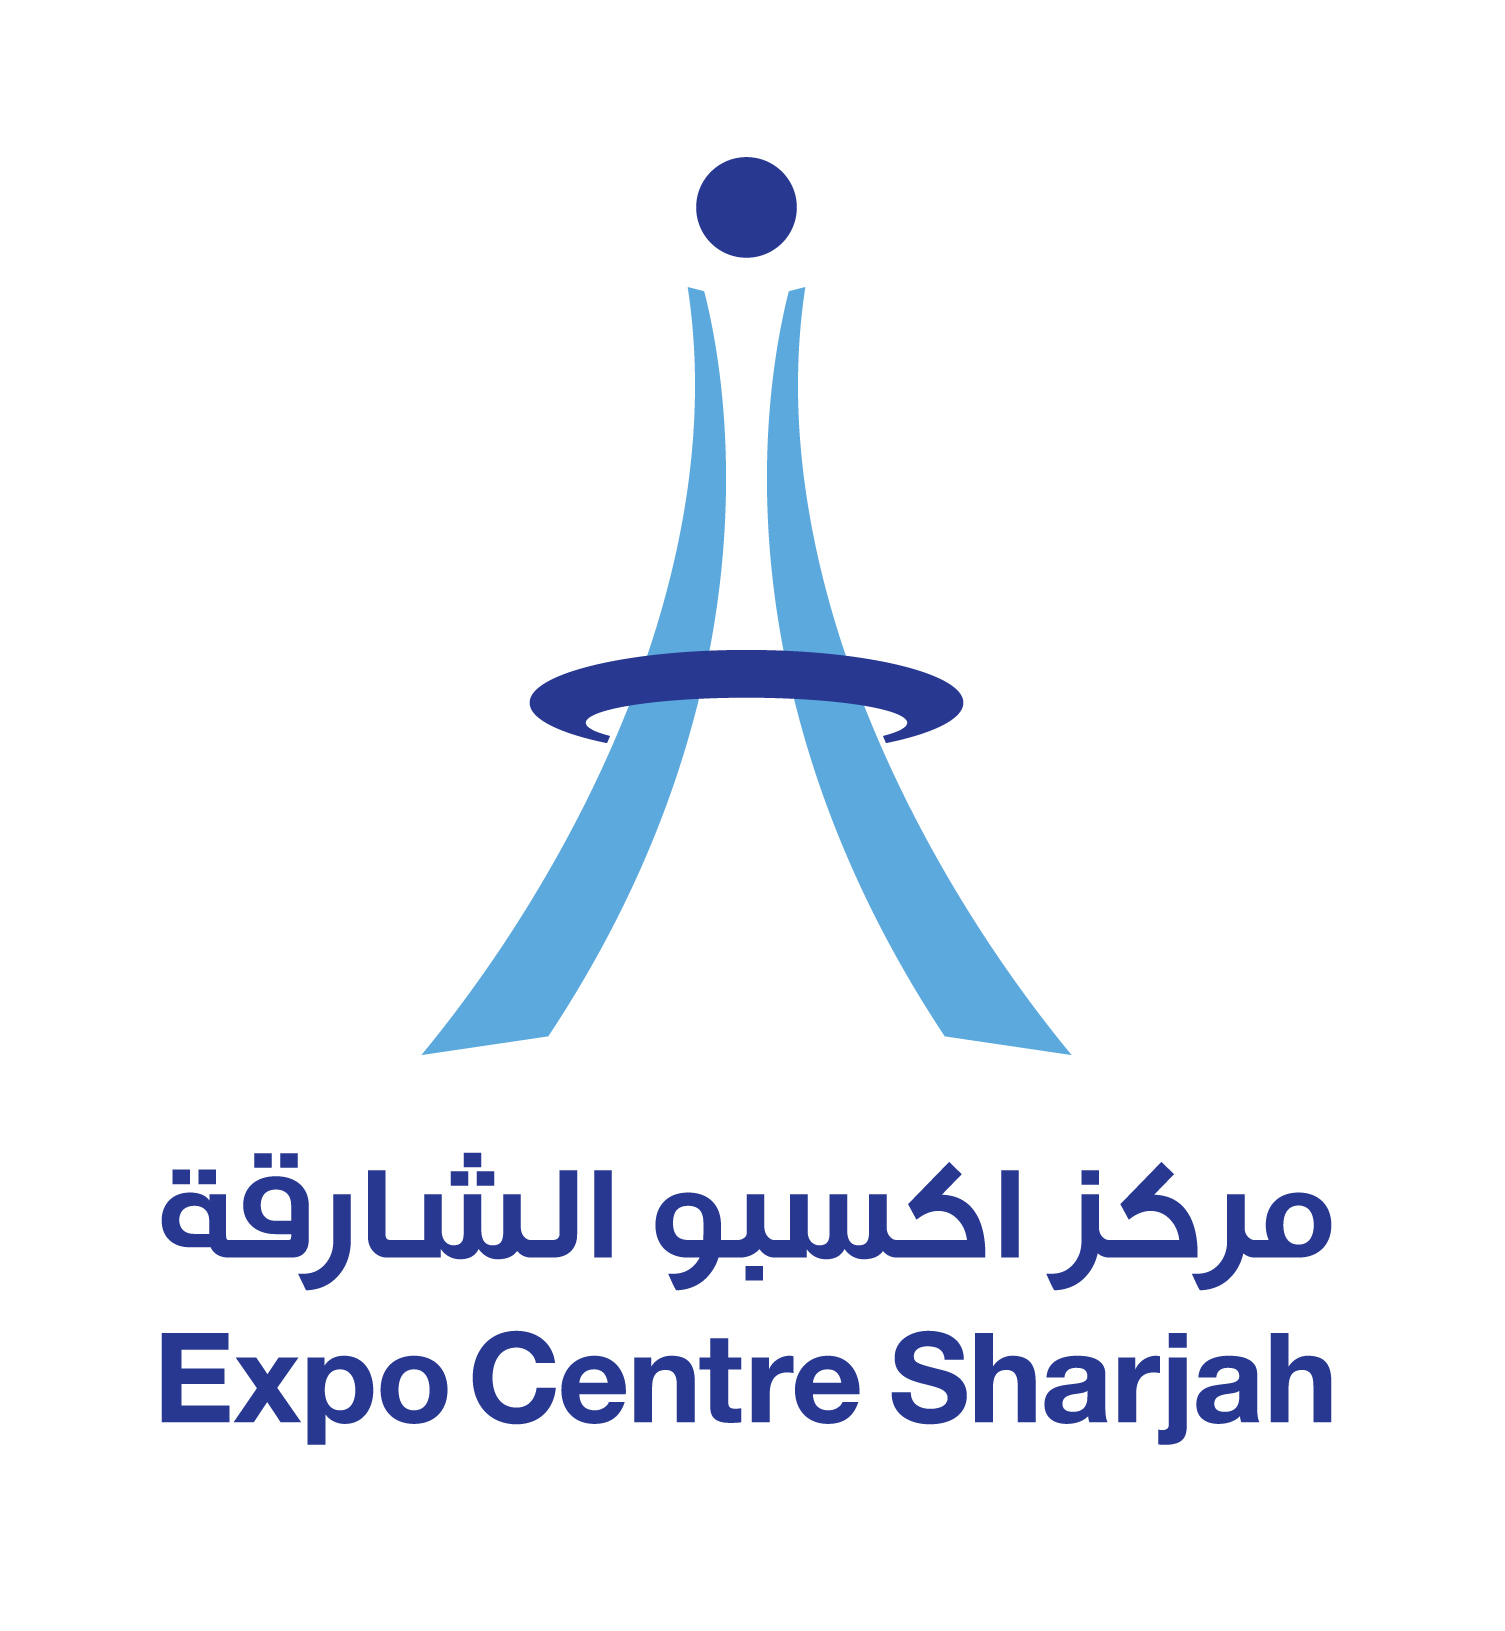 Expo Centre Sharjah_Brandmark_White BG.jpg